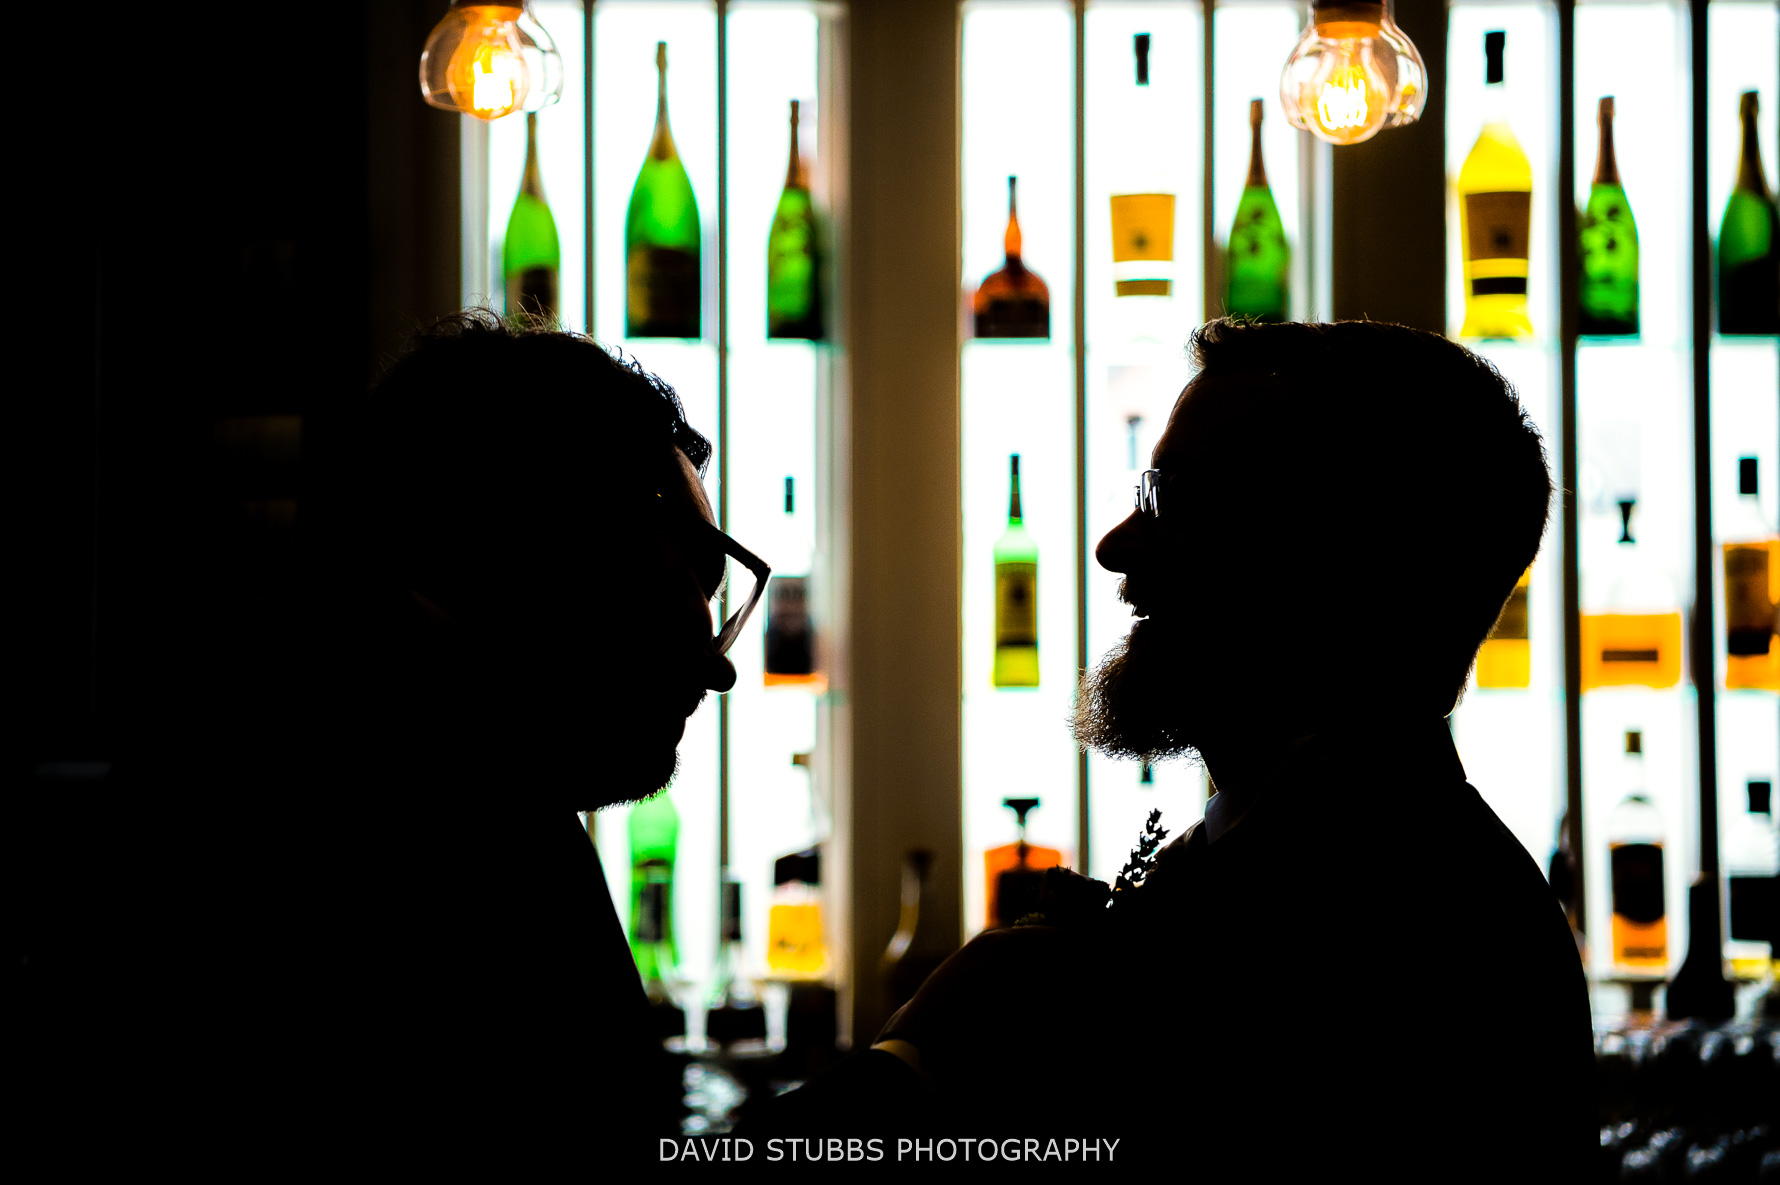 silhouette in bar light